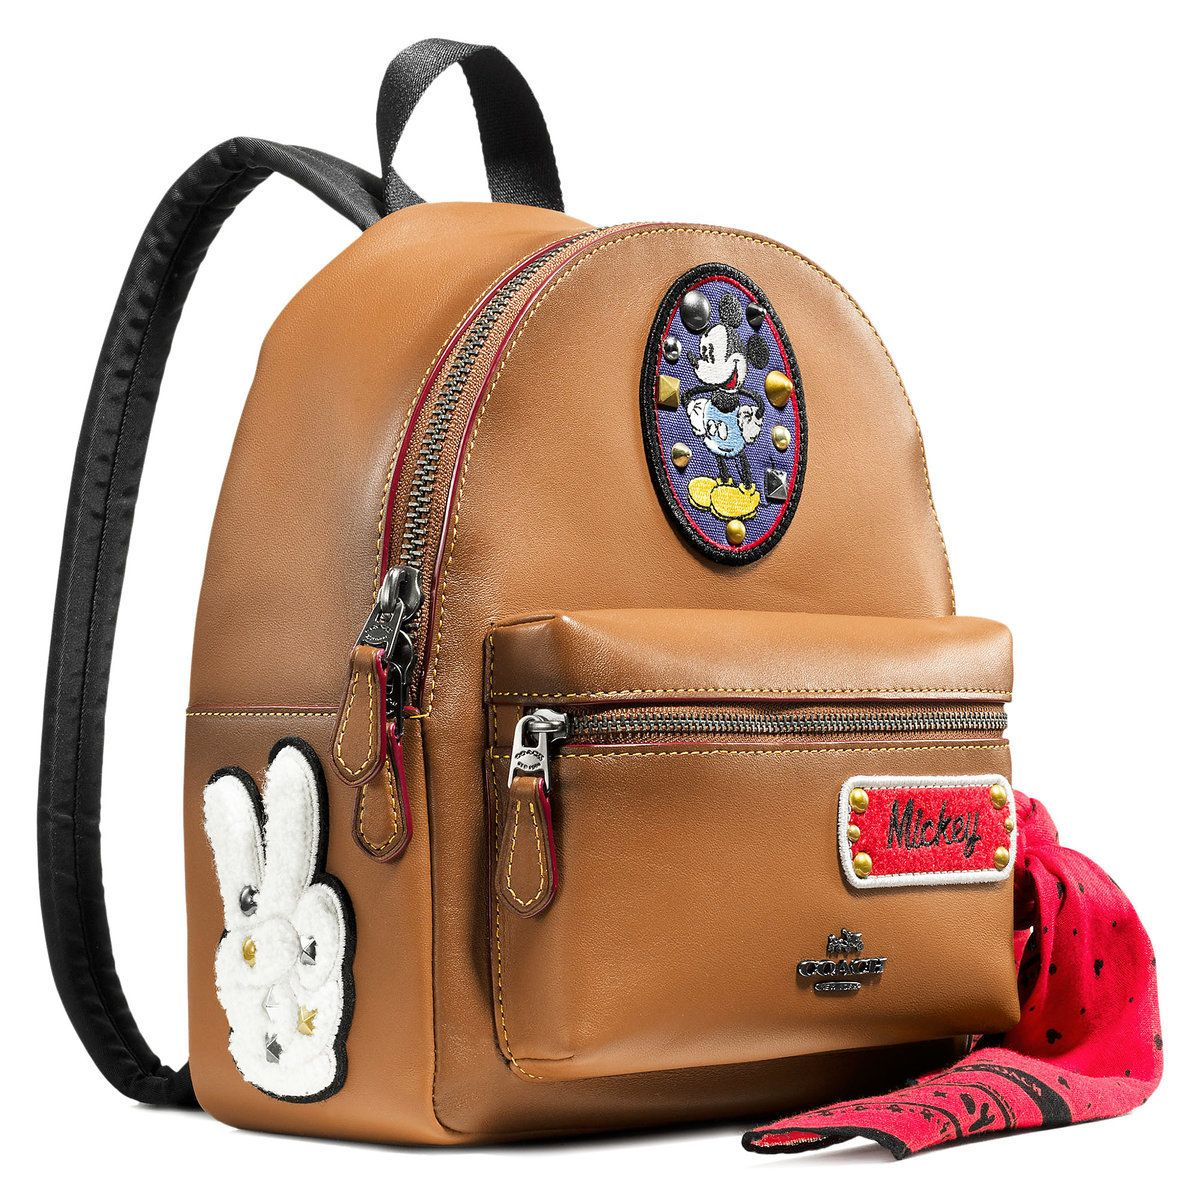 655763bac60 Mickey Mouse Patch Mini Charlie Leather Backpack by COACH   Disney ...